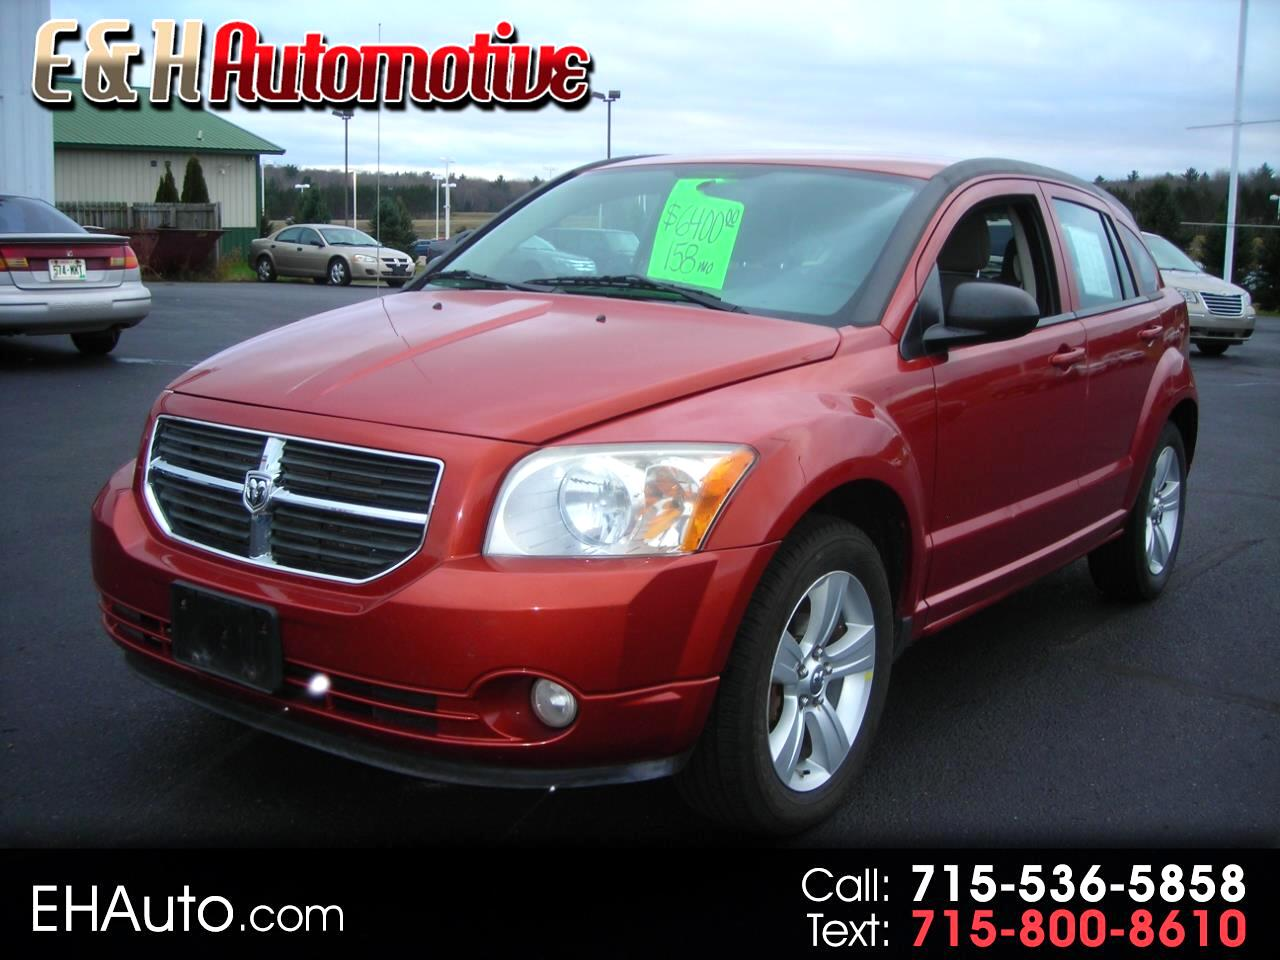 2010 Dodge Caliber 4dr HB Mainstreet